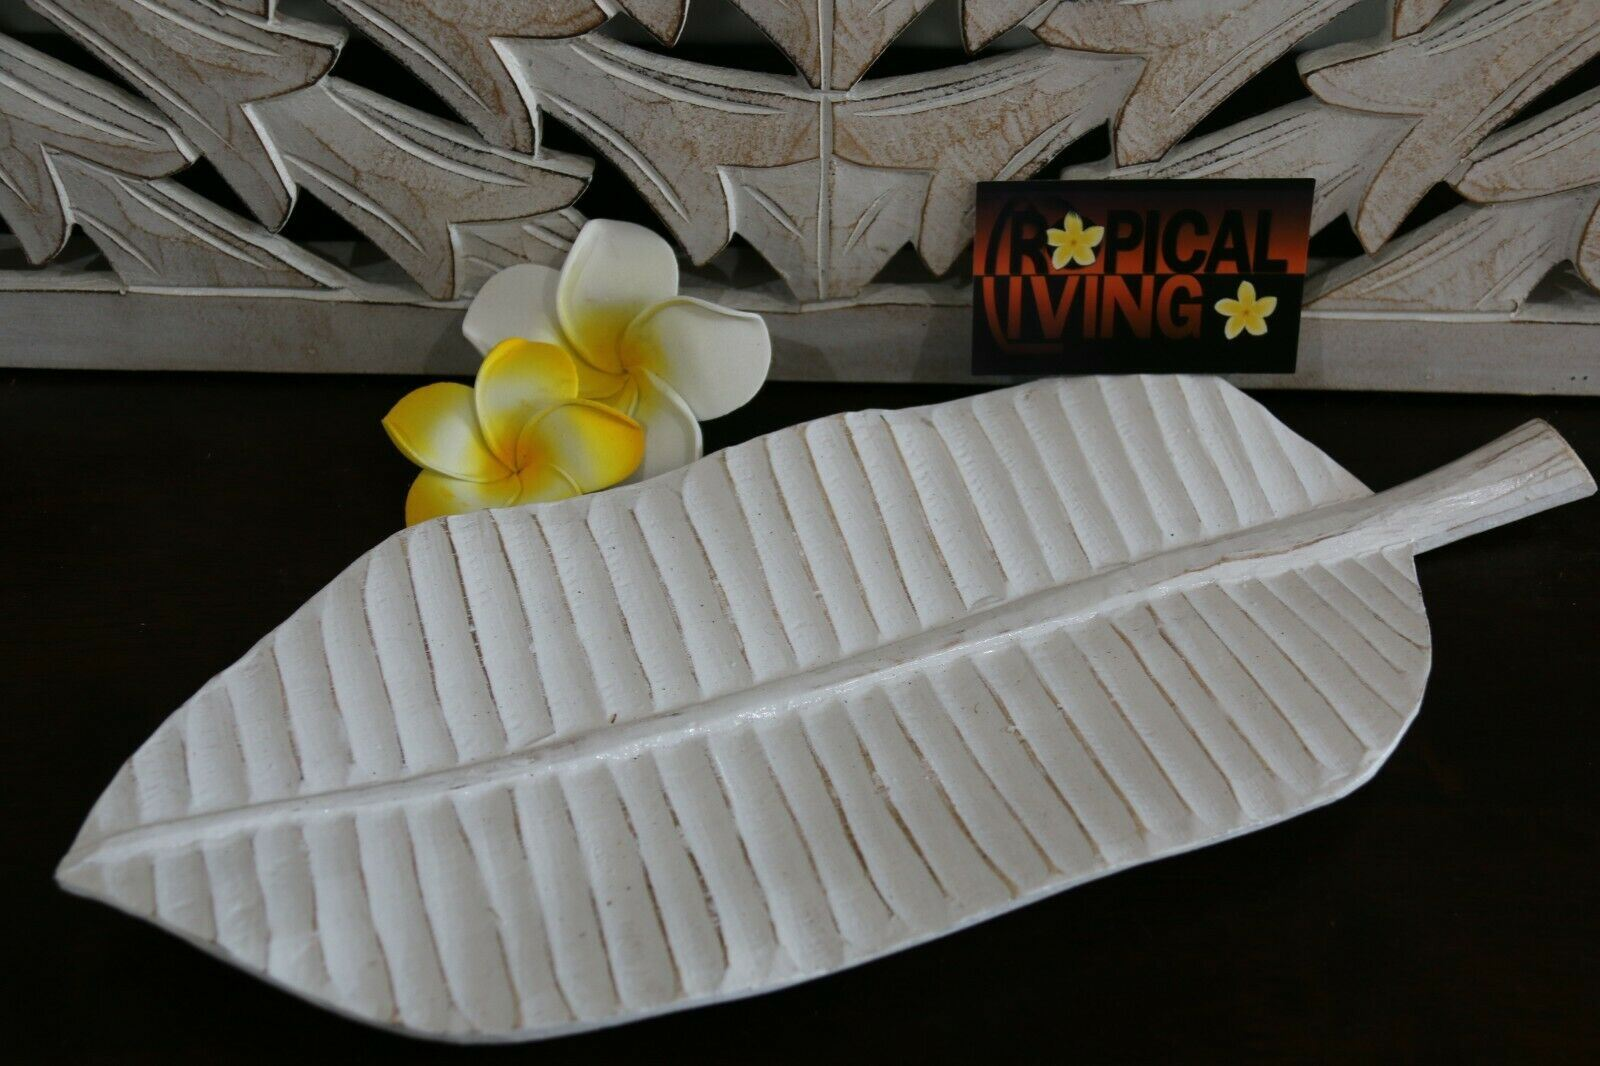 NEW Balinese Hand Carved Wooden Banana Leaf Platter - 3 sizes available.